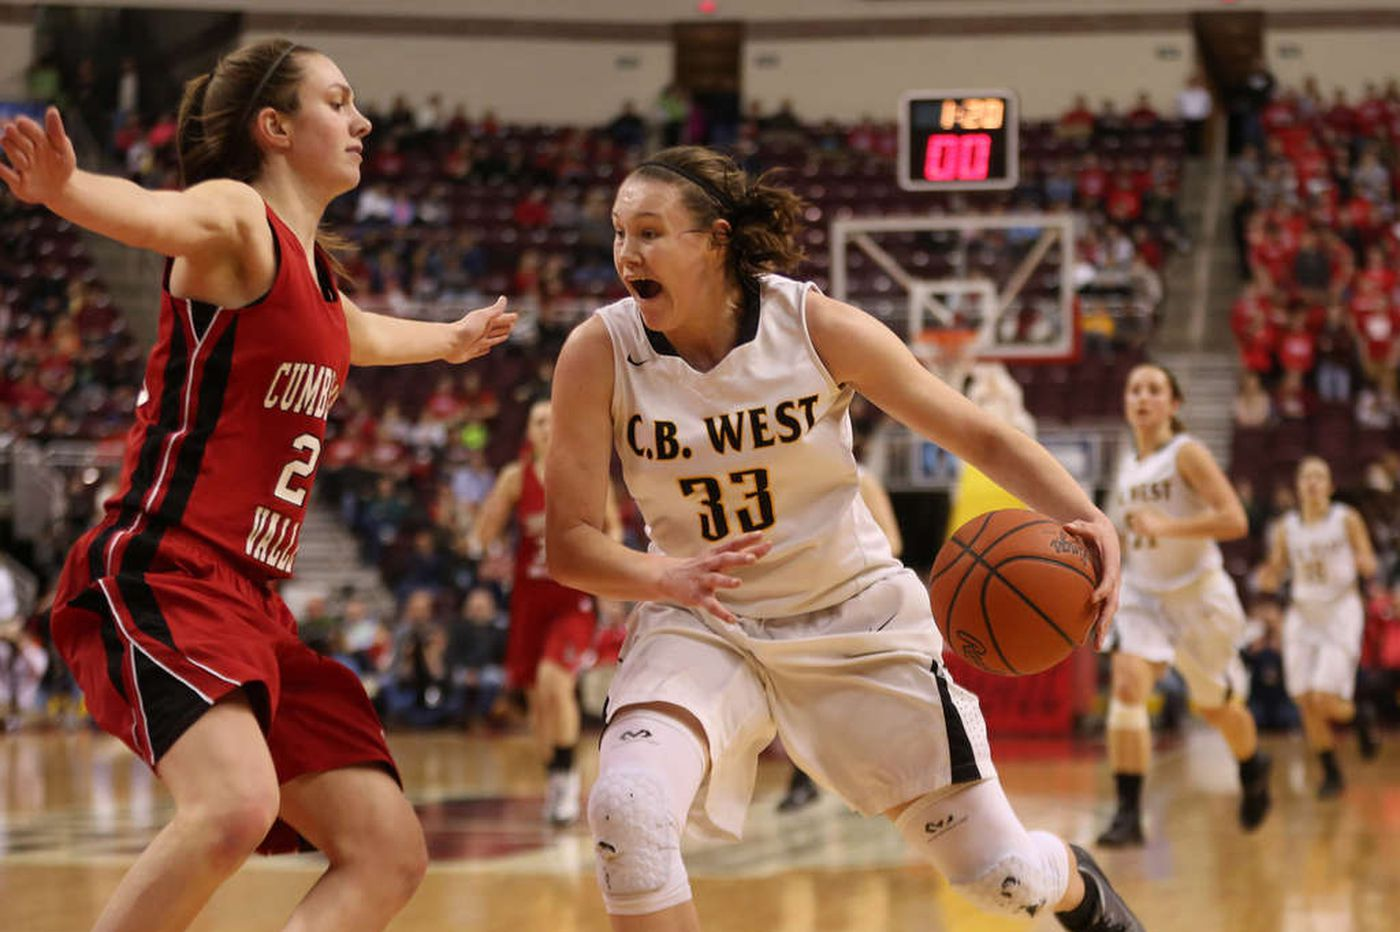 Munger's great career ends as C.B. West falls to Cumberland Valley